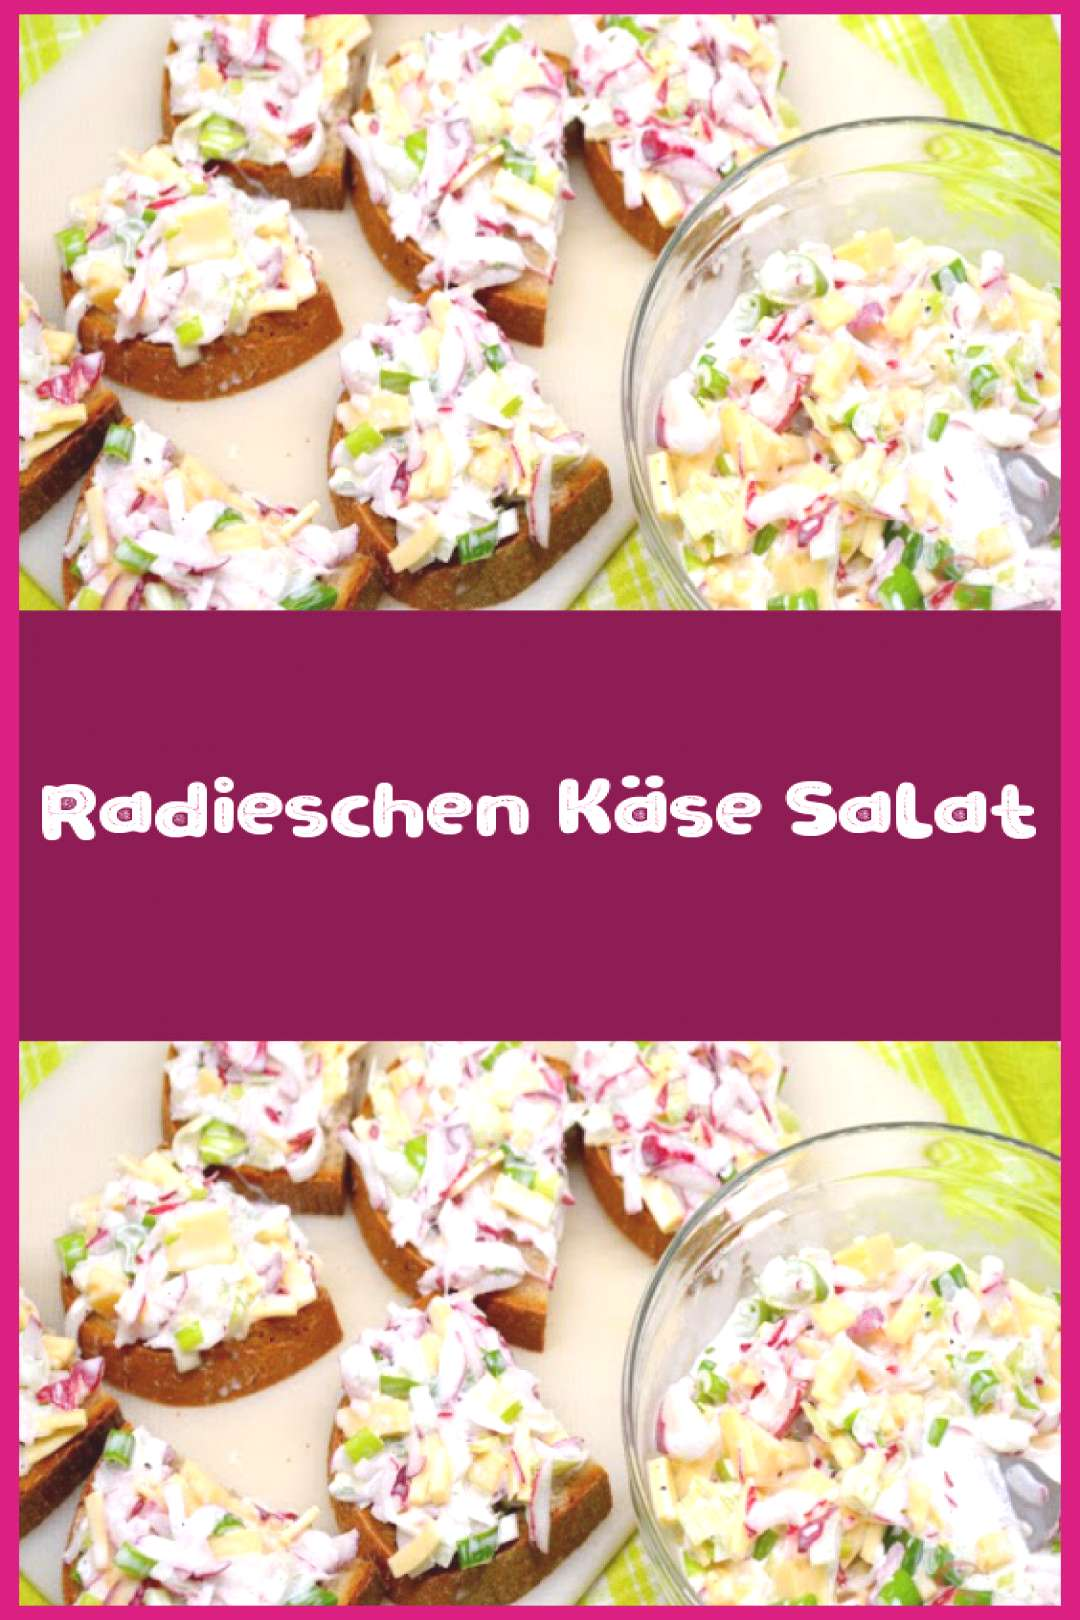 Radish cheese salad - ingredients 2 bunches of radishes 1 bunch of spring onions 10 ...,Radis... Ra